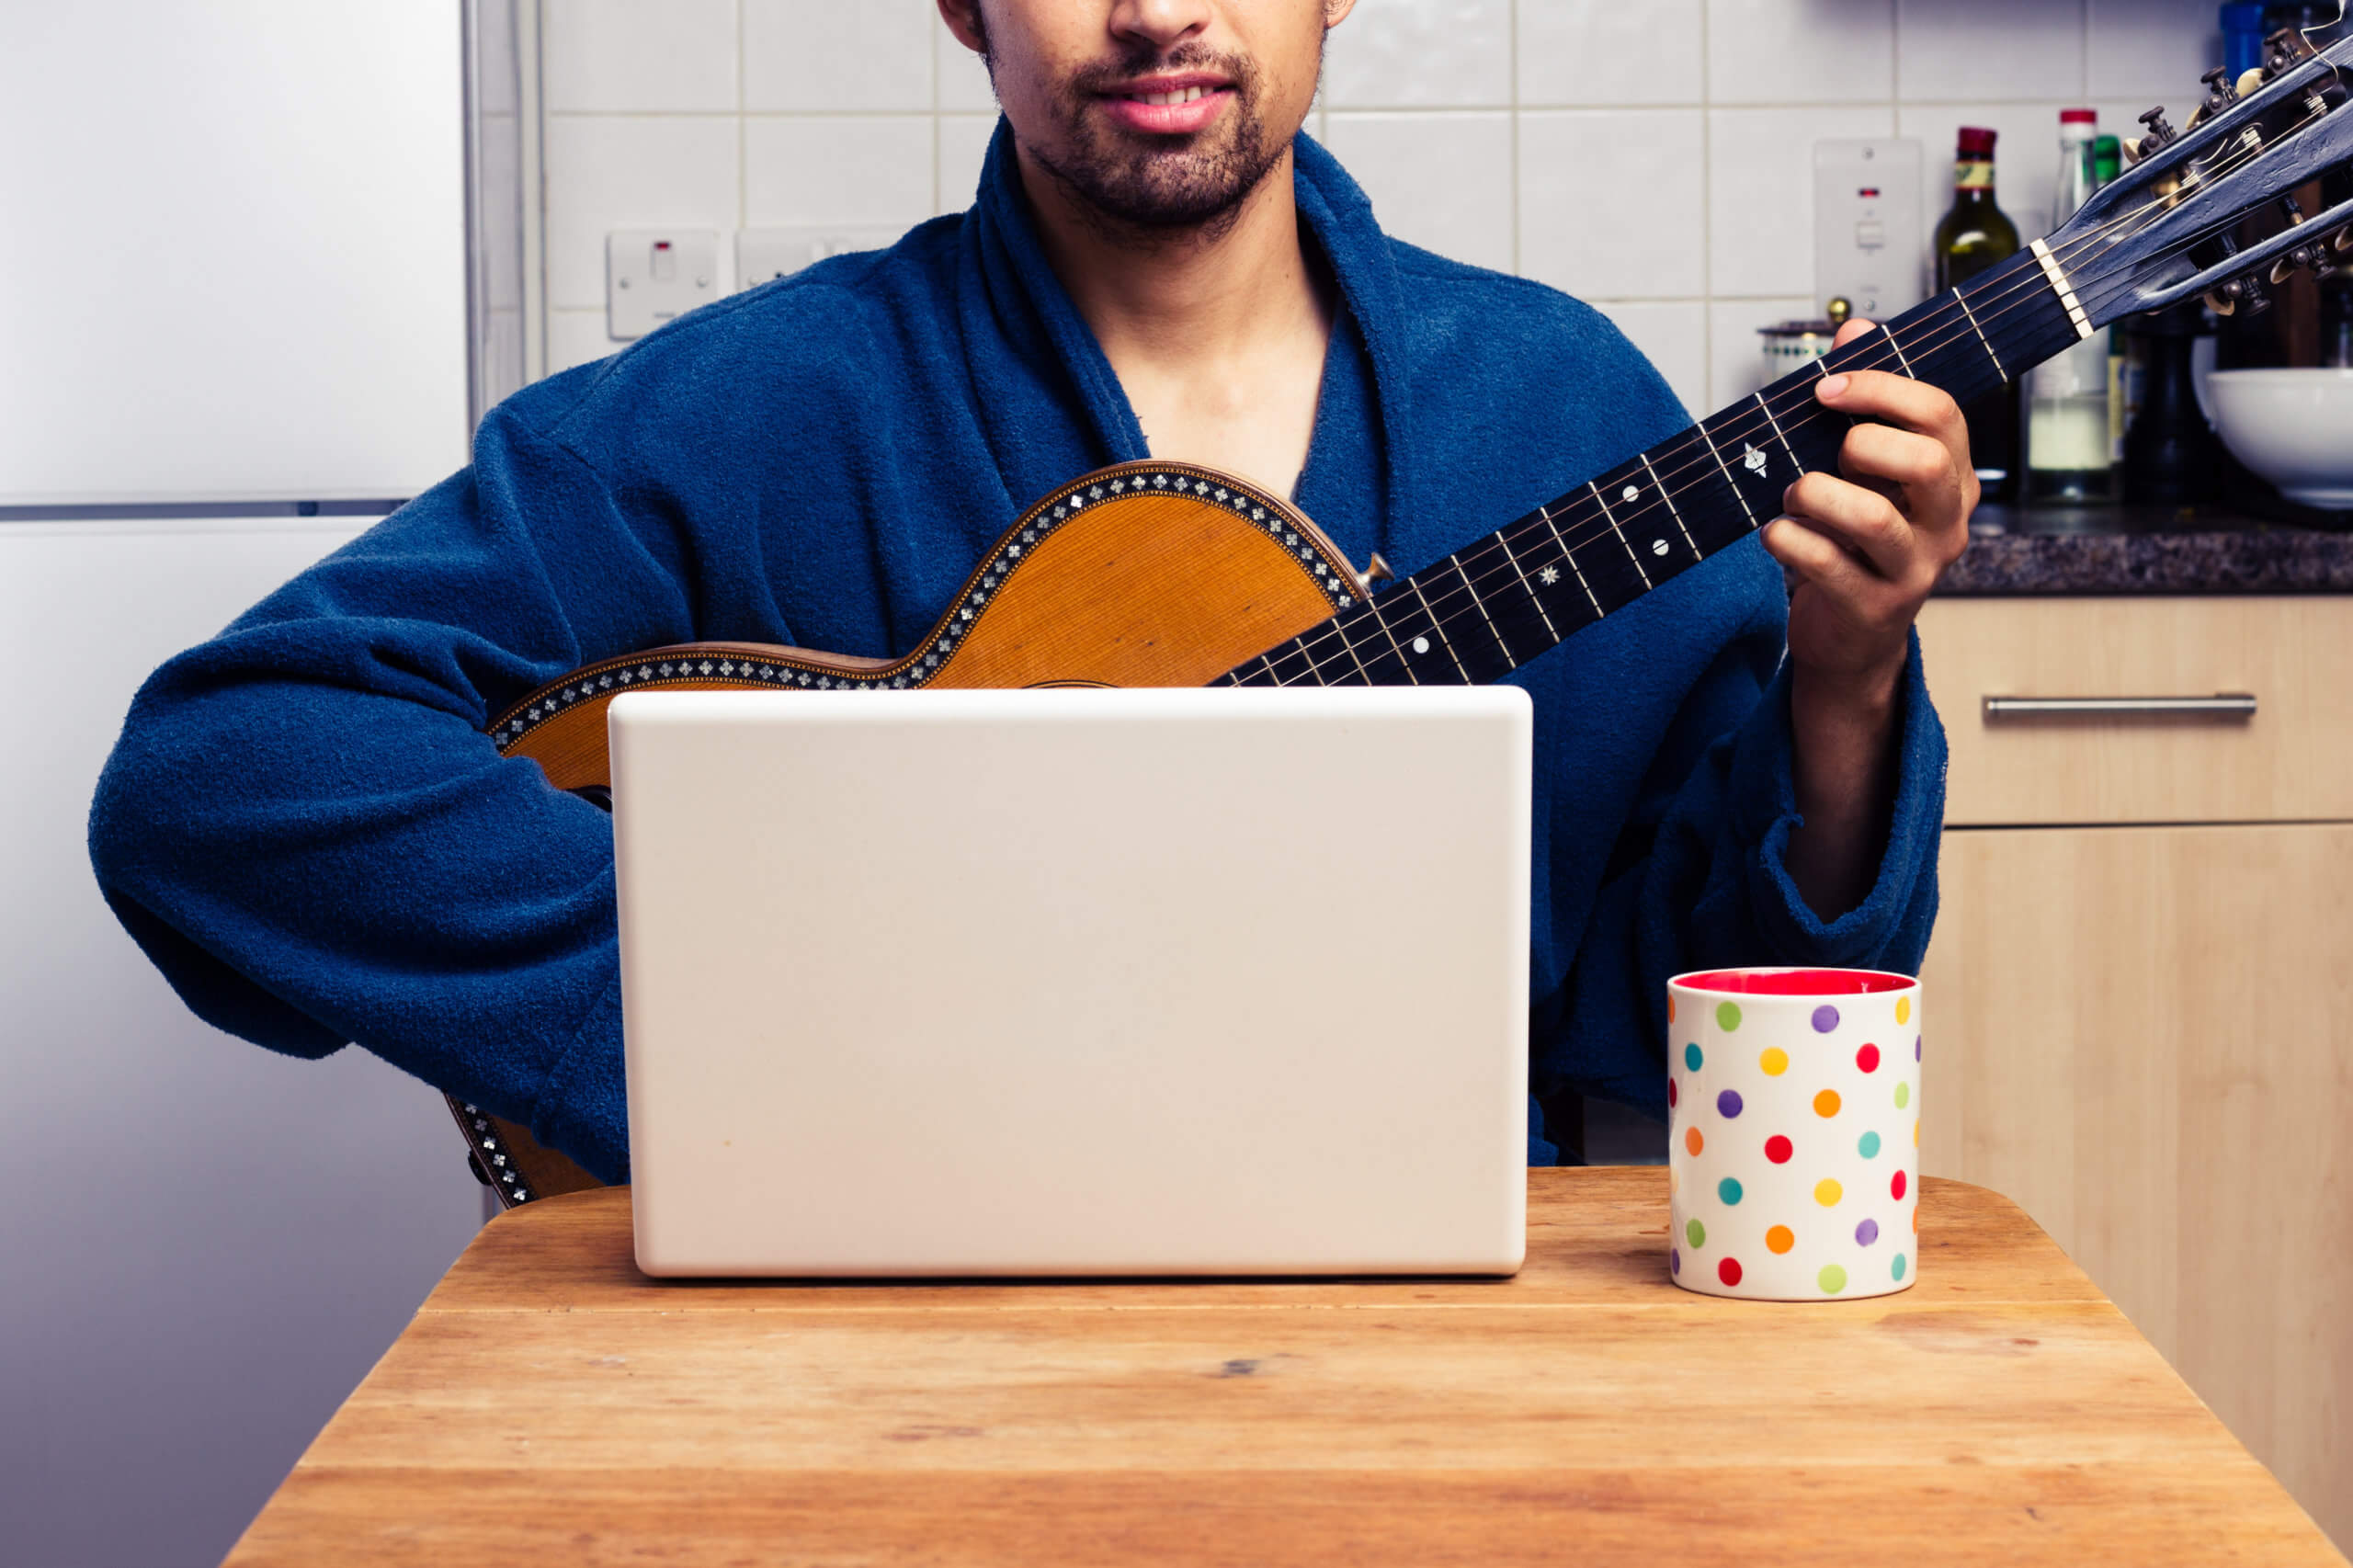 man learning to play guitar in kitchen